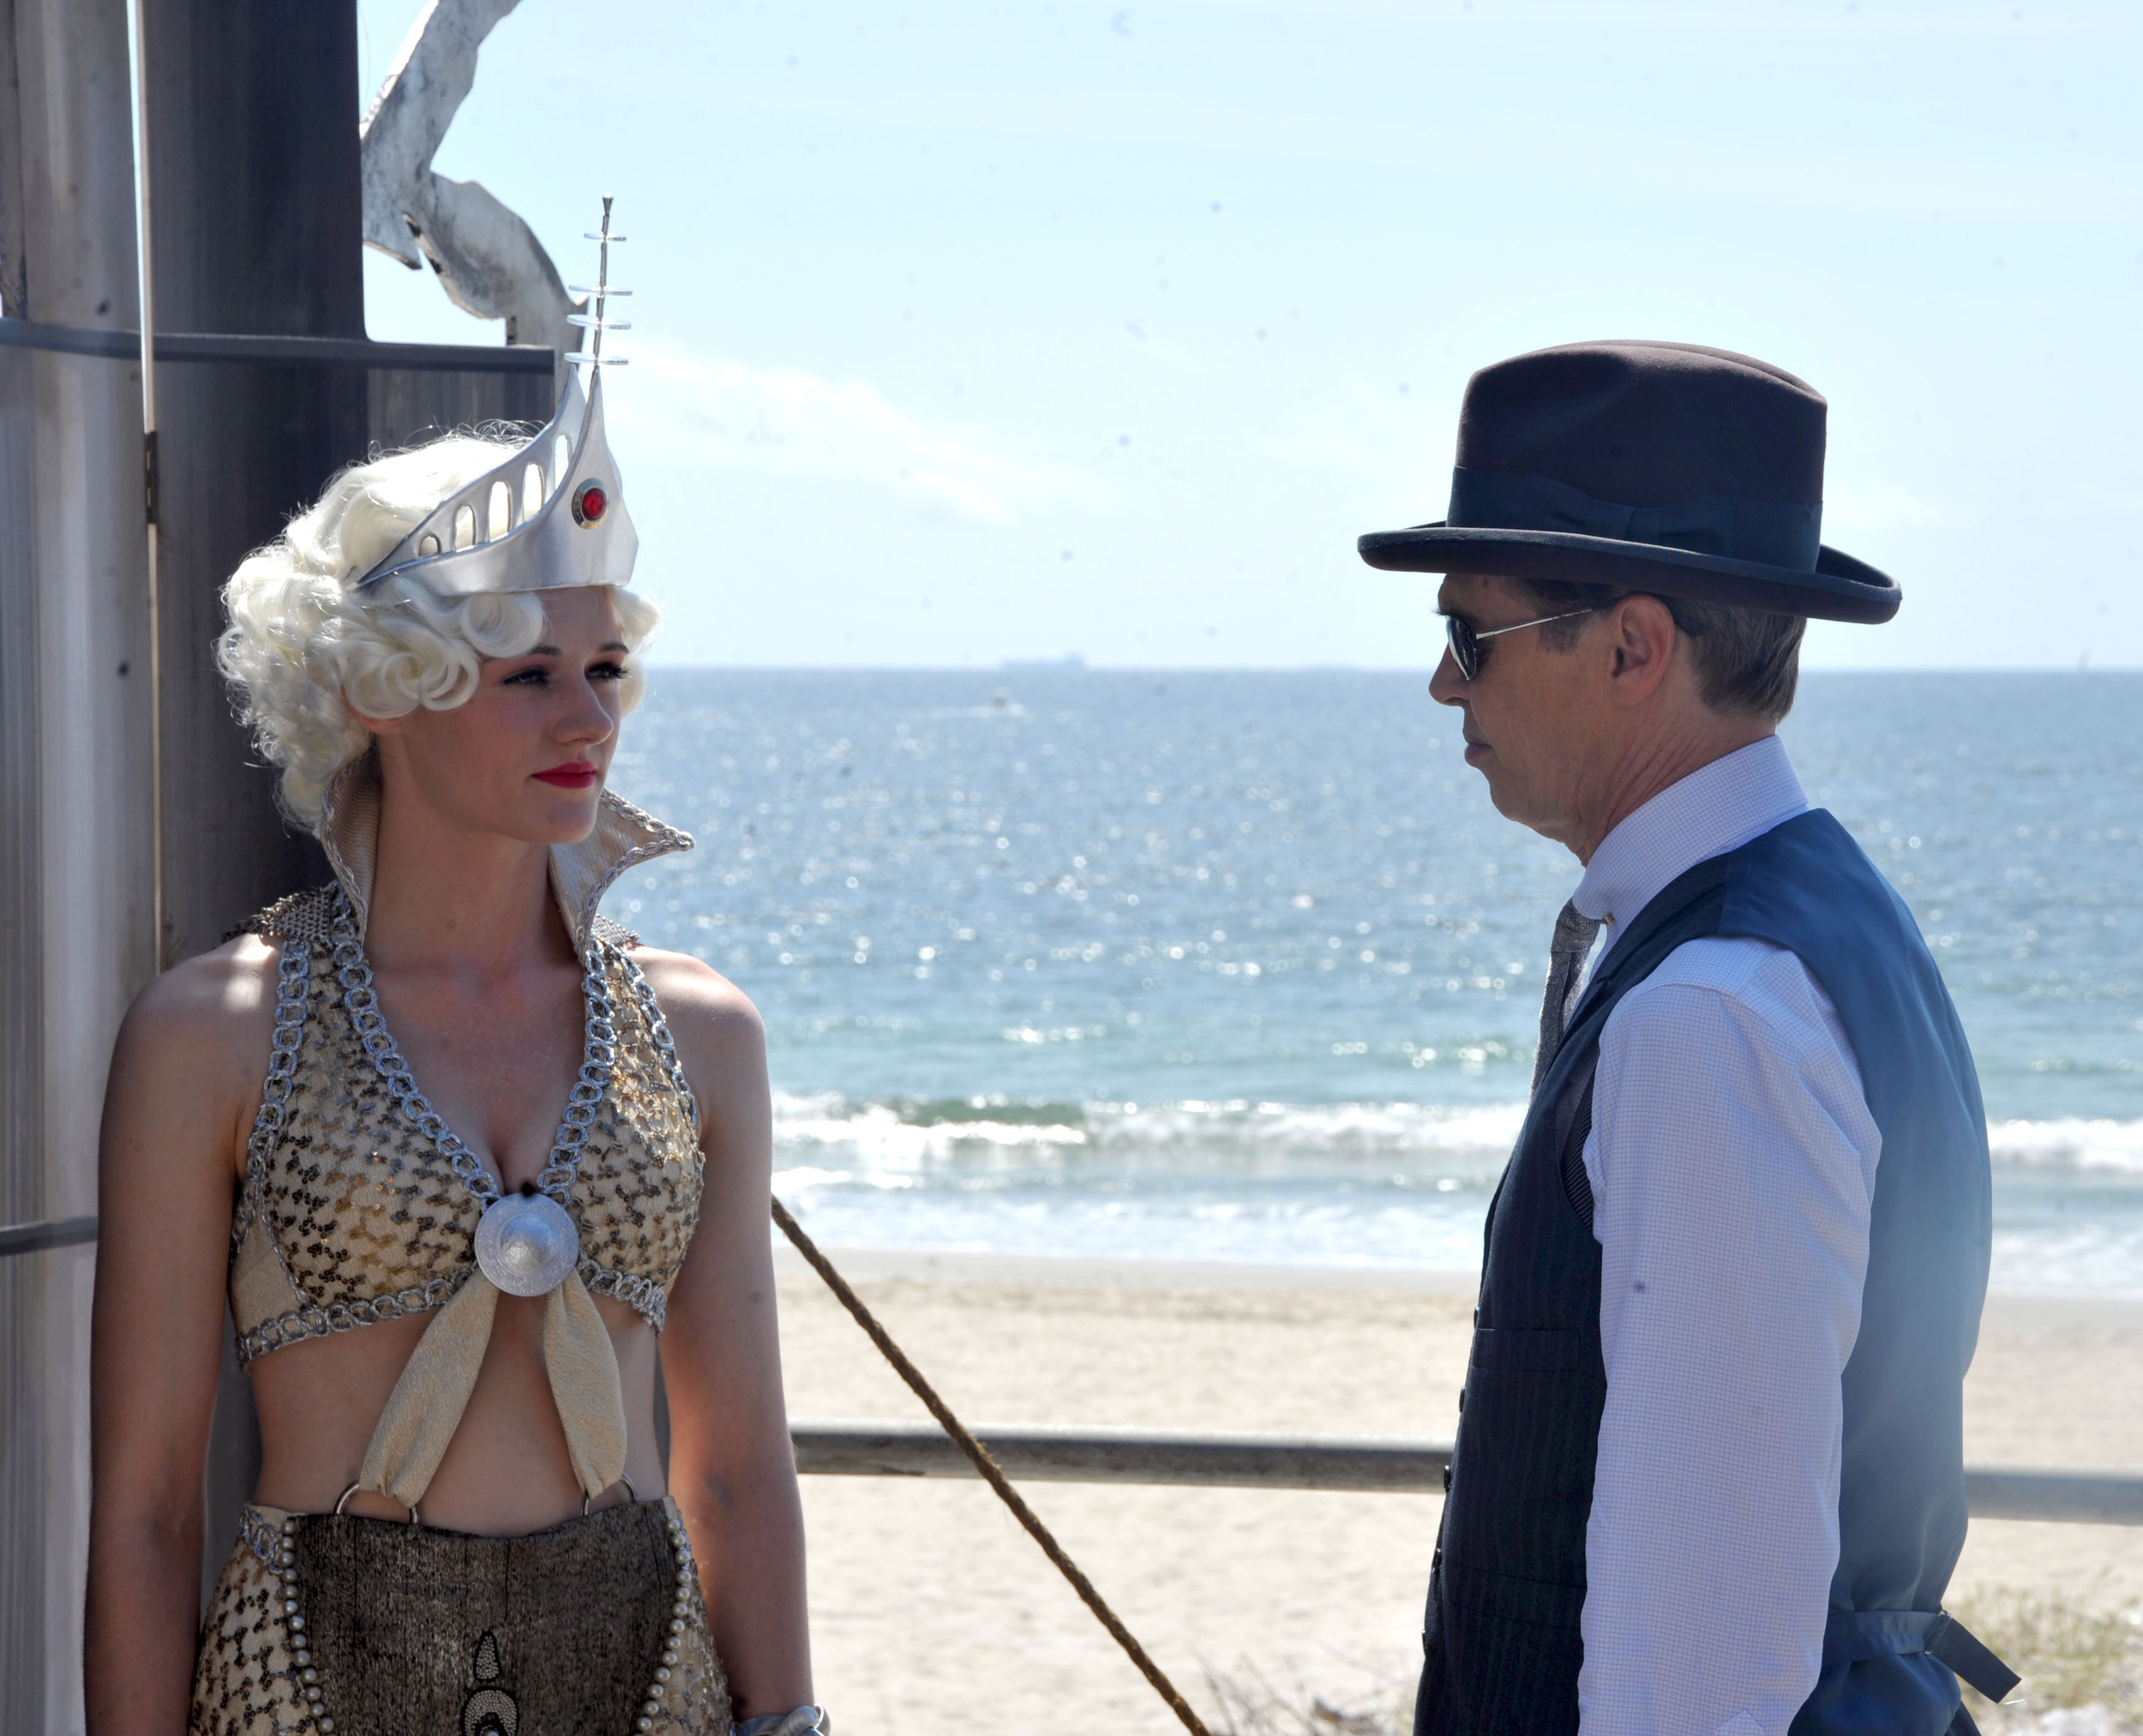 On set with Steve Buscemi for the final episode of HBO's  Boardwalk Empire . Photo taken by Steve Sands, courtesy of Getty Images.